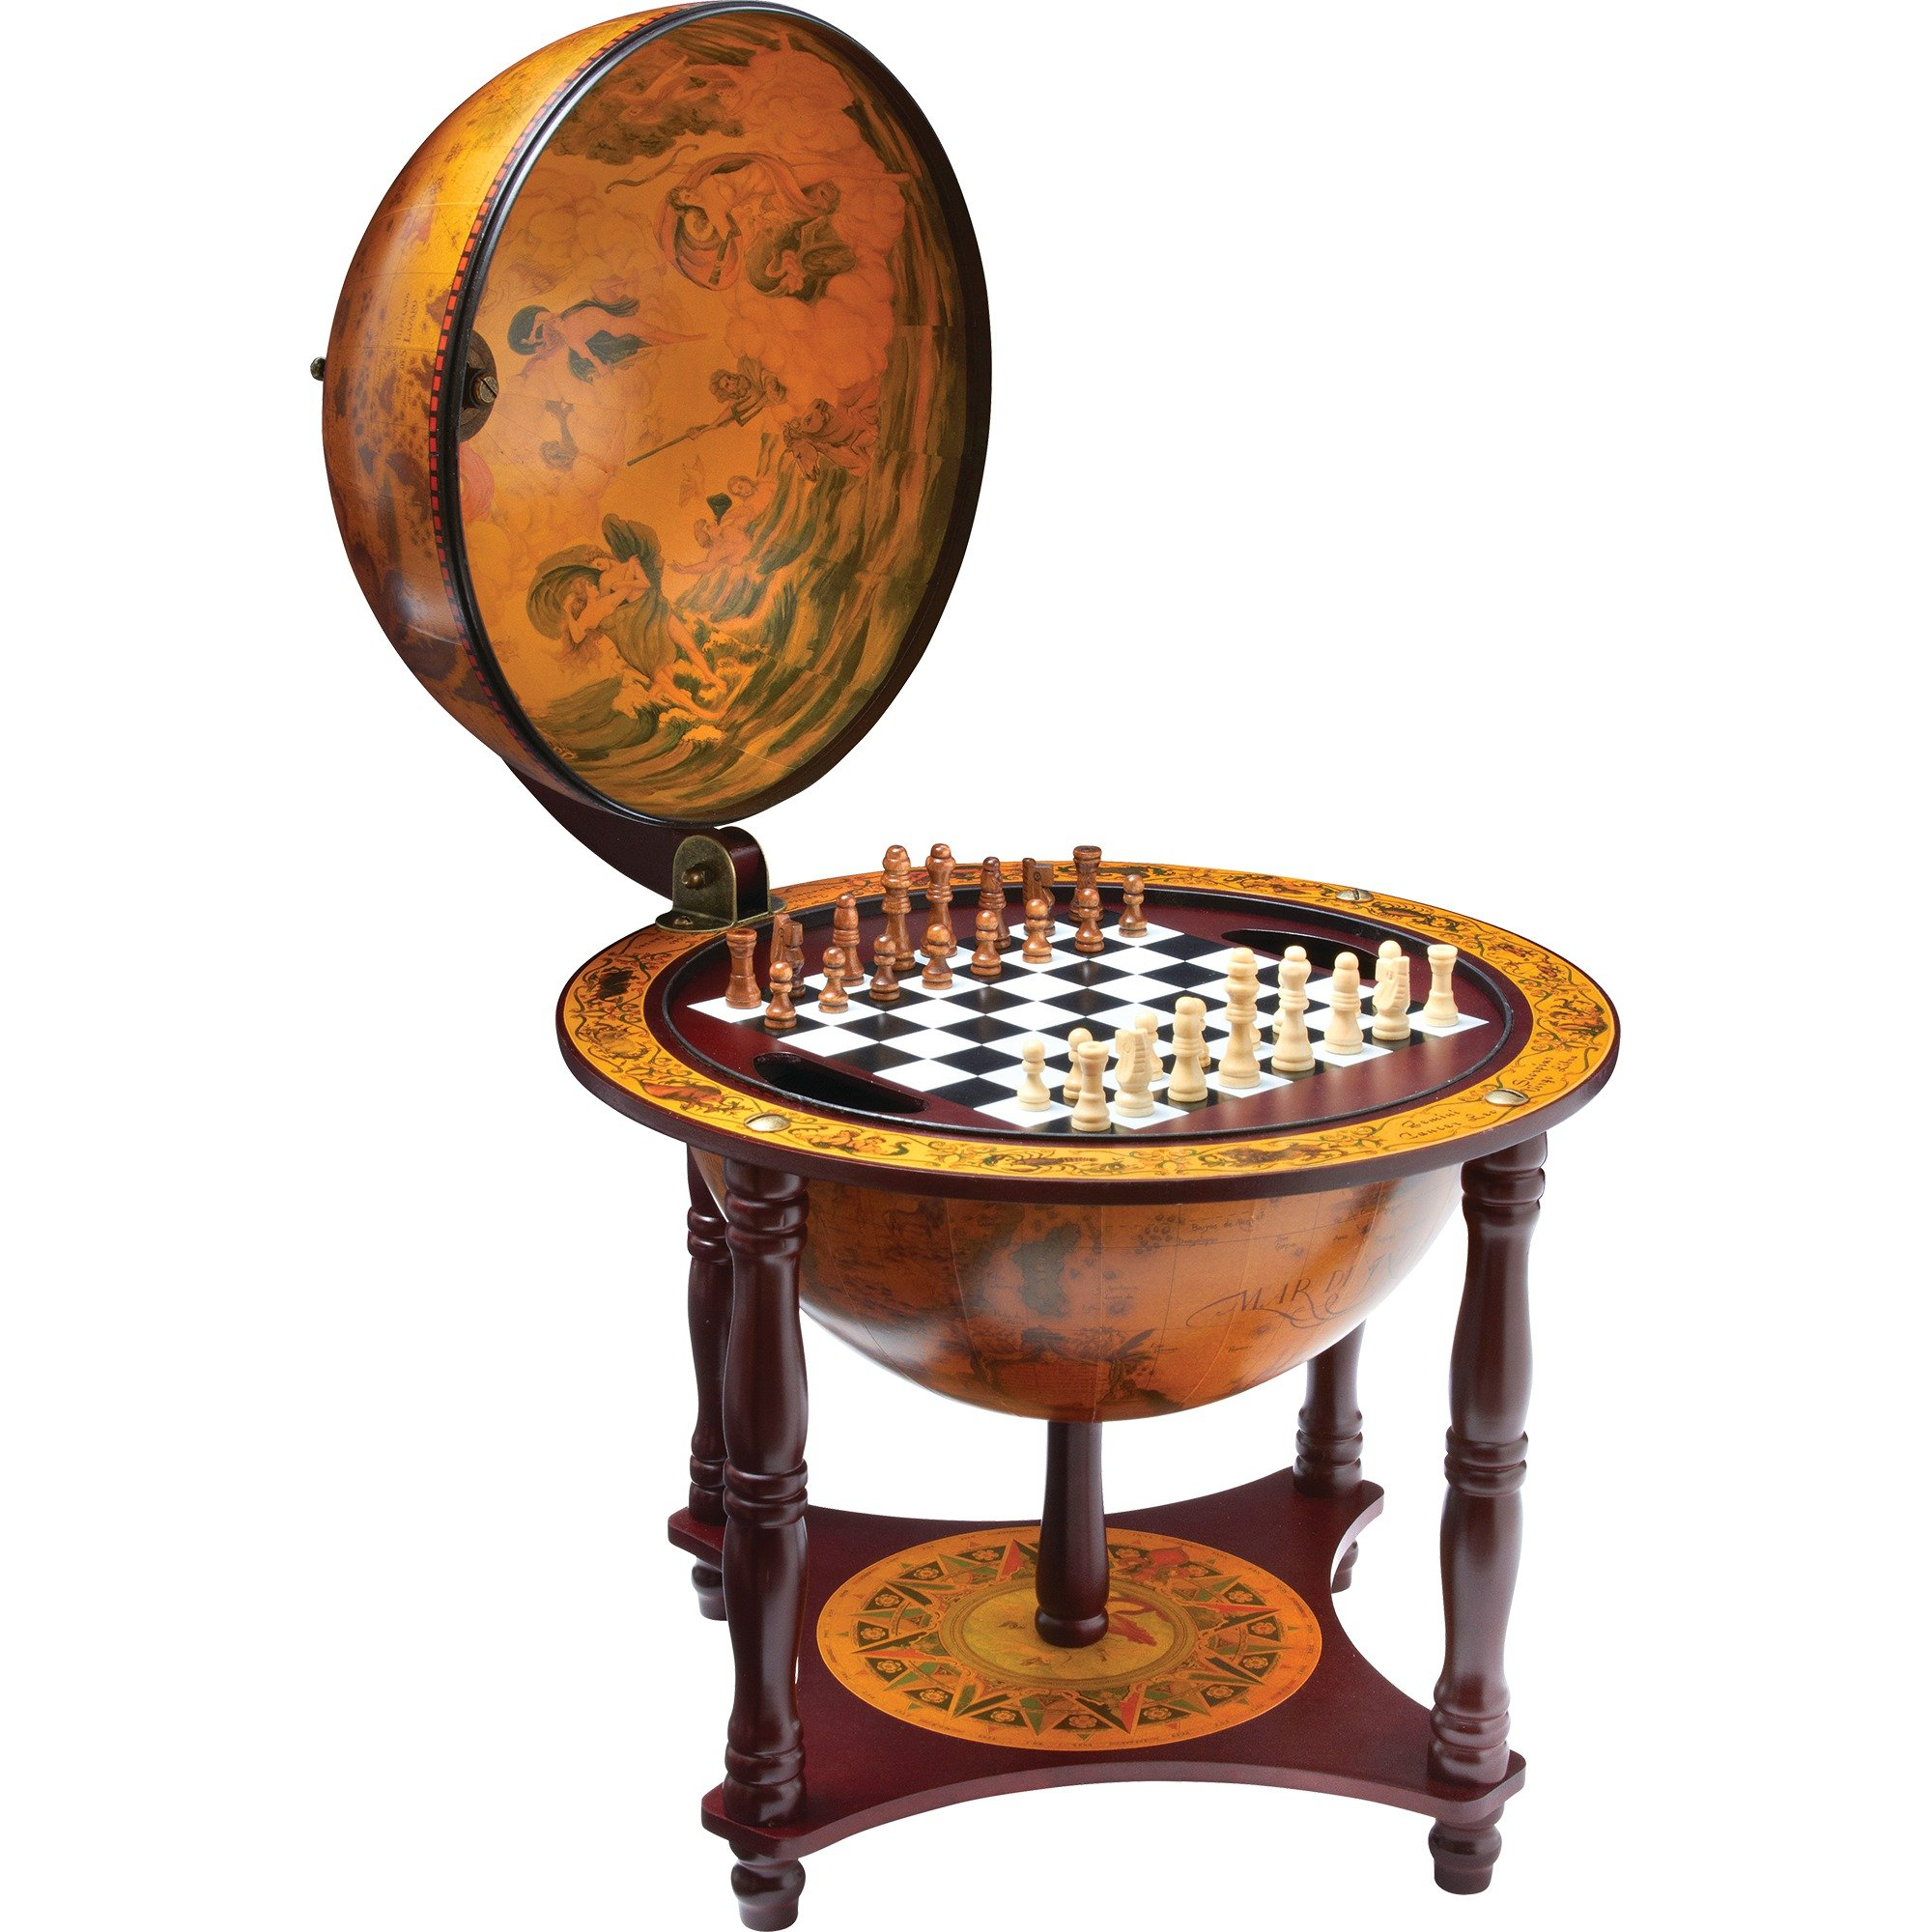 "Kassel 13"" Diameter Globe with 57pc Chess and Checkers Set"